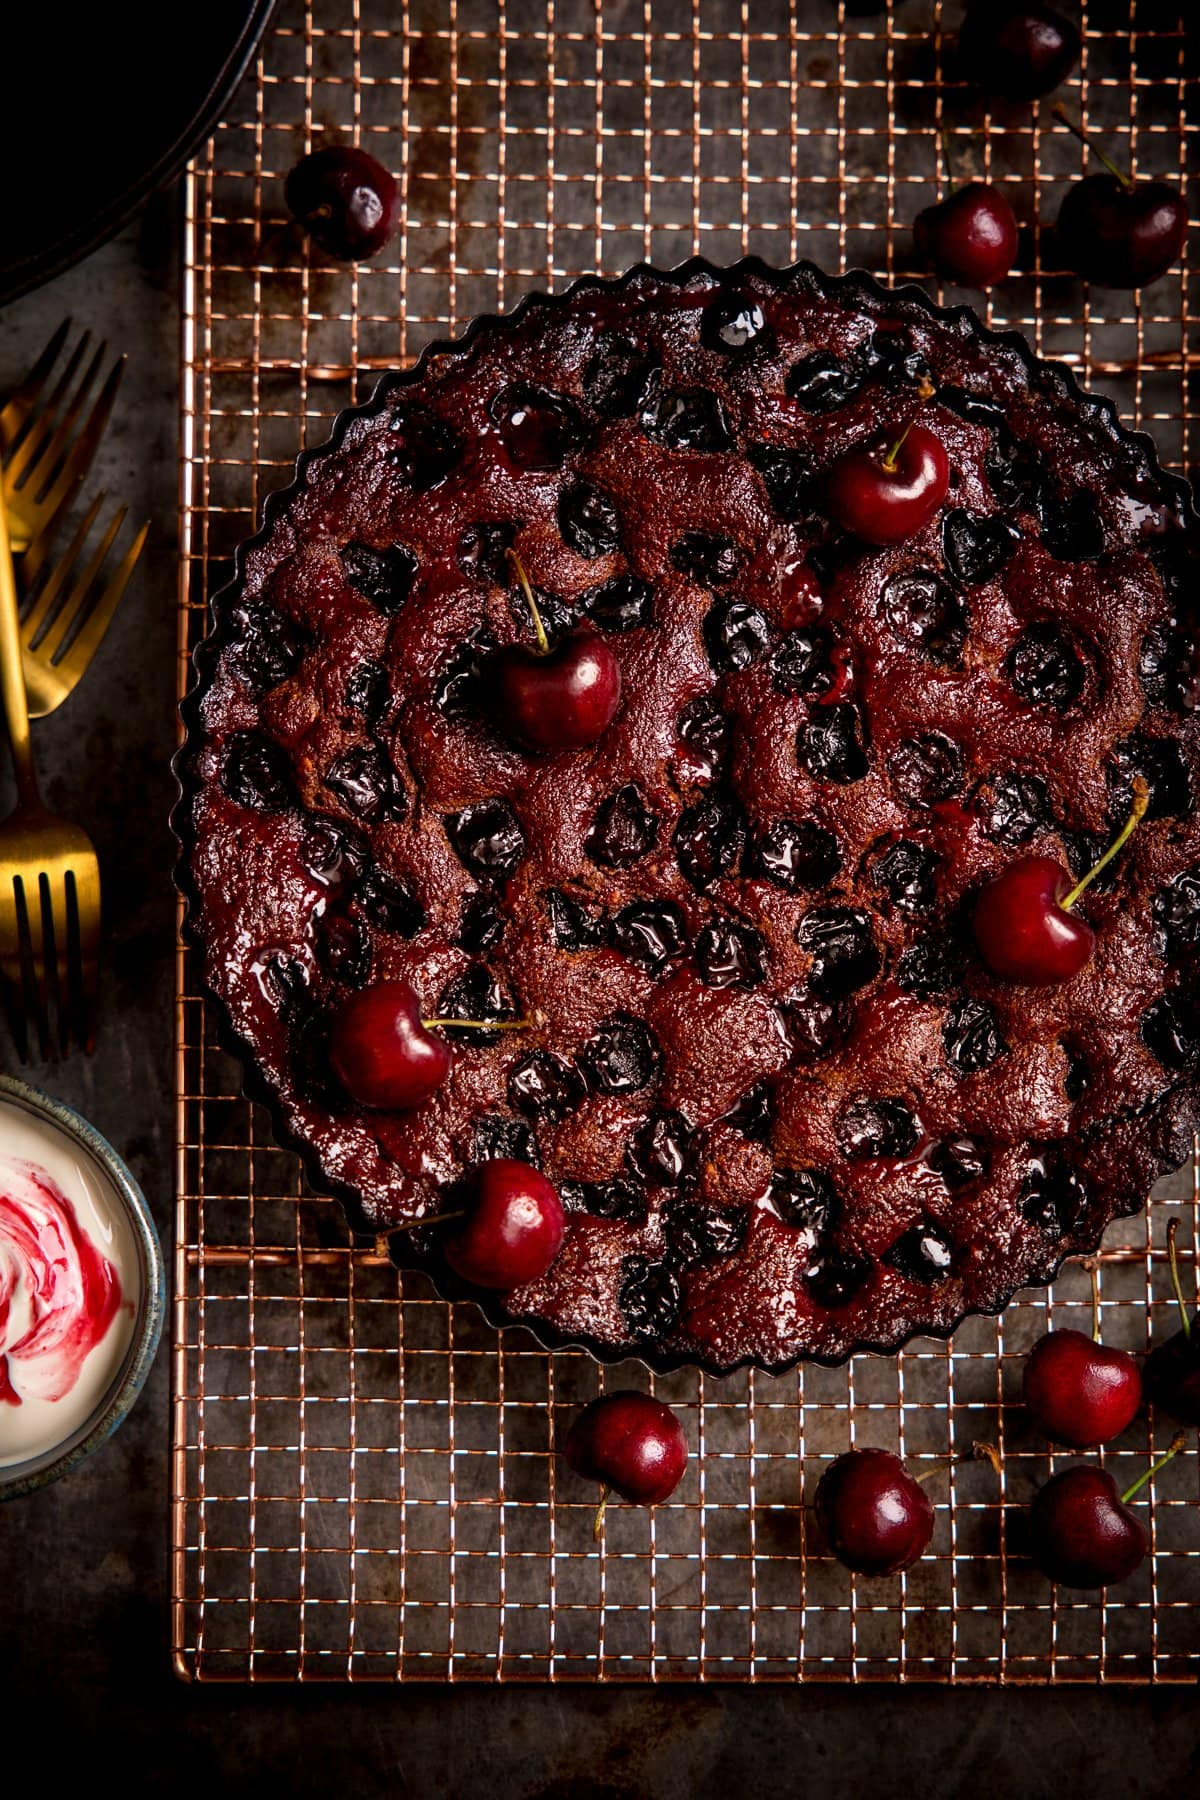 Overhead image of Chocolate Cherry Cake on a wire rack with cherries scattered around.